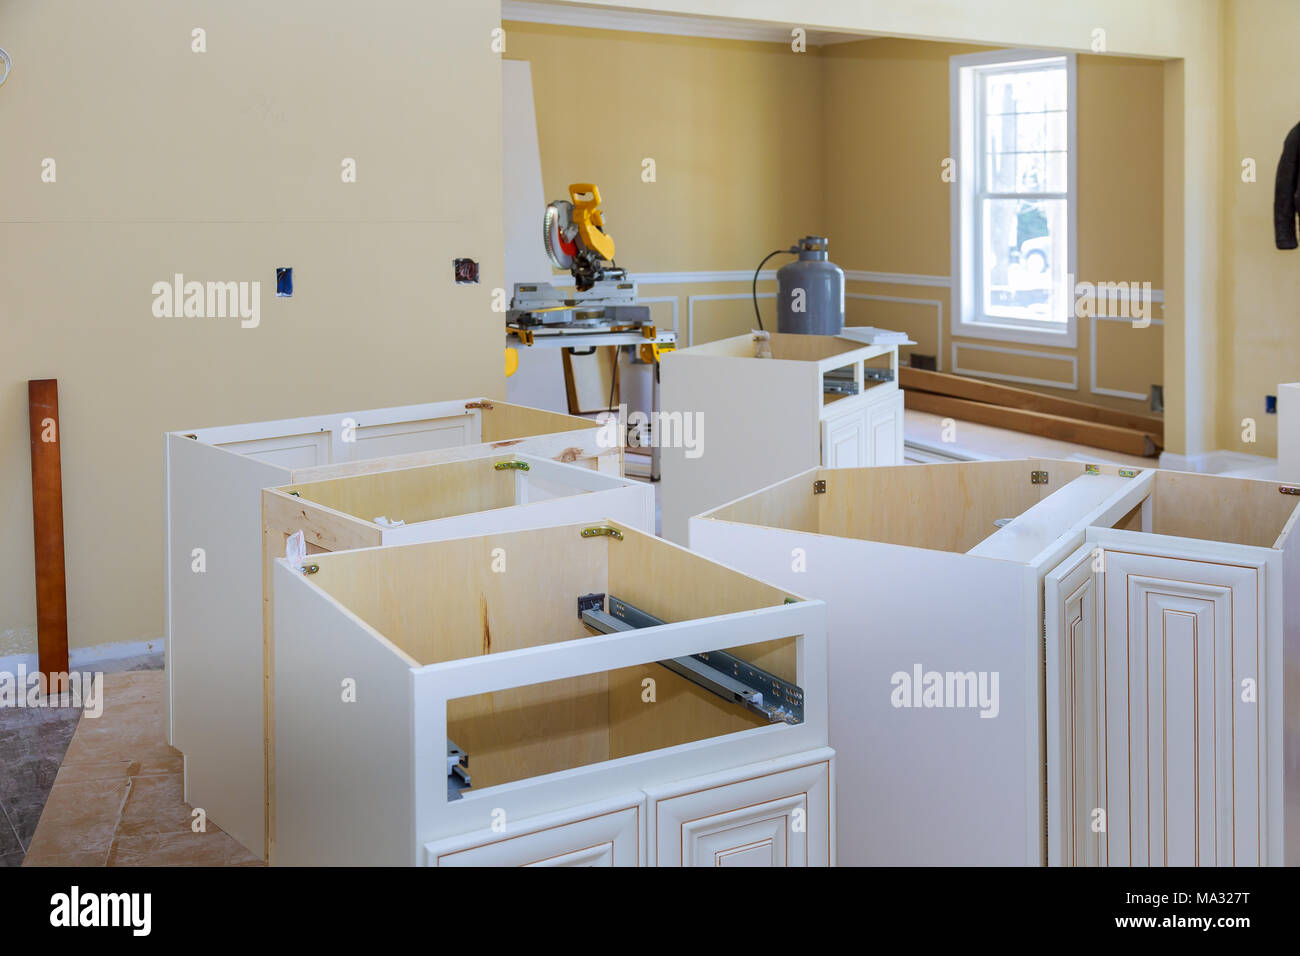 Installing New Modern Kitchen Installation Of Kitchen Cabinet Of Installation Base For Island In Center Stock Photo Alamy